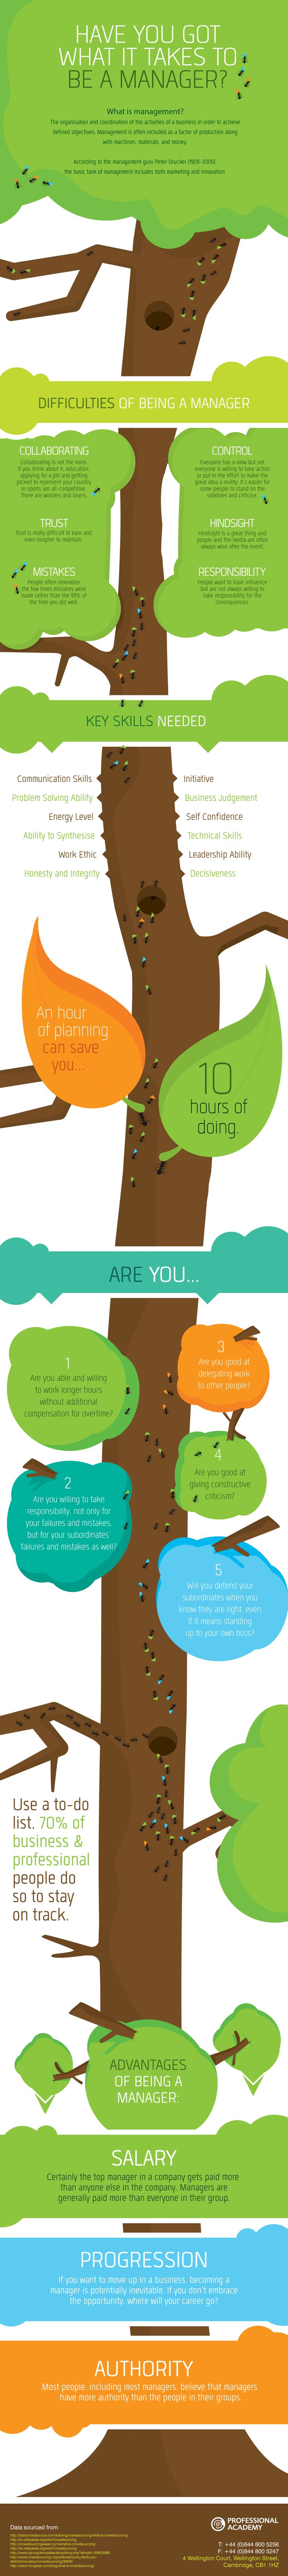 Have you got what it takes to be a manager? Professional Academy Management & Leadership Infographic